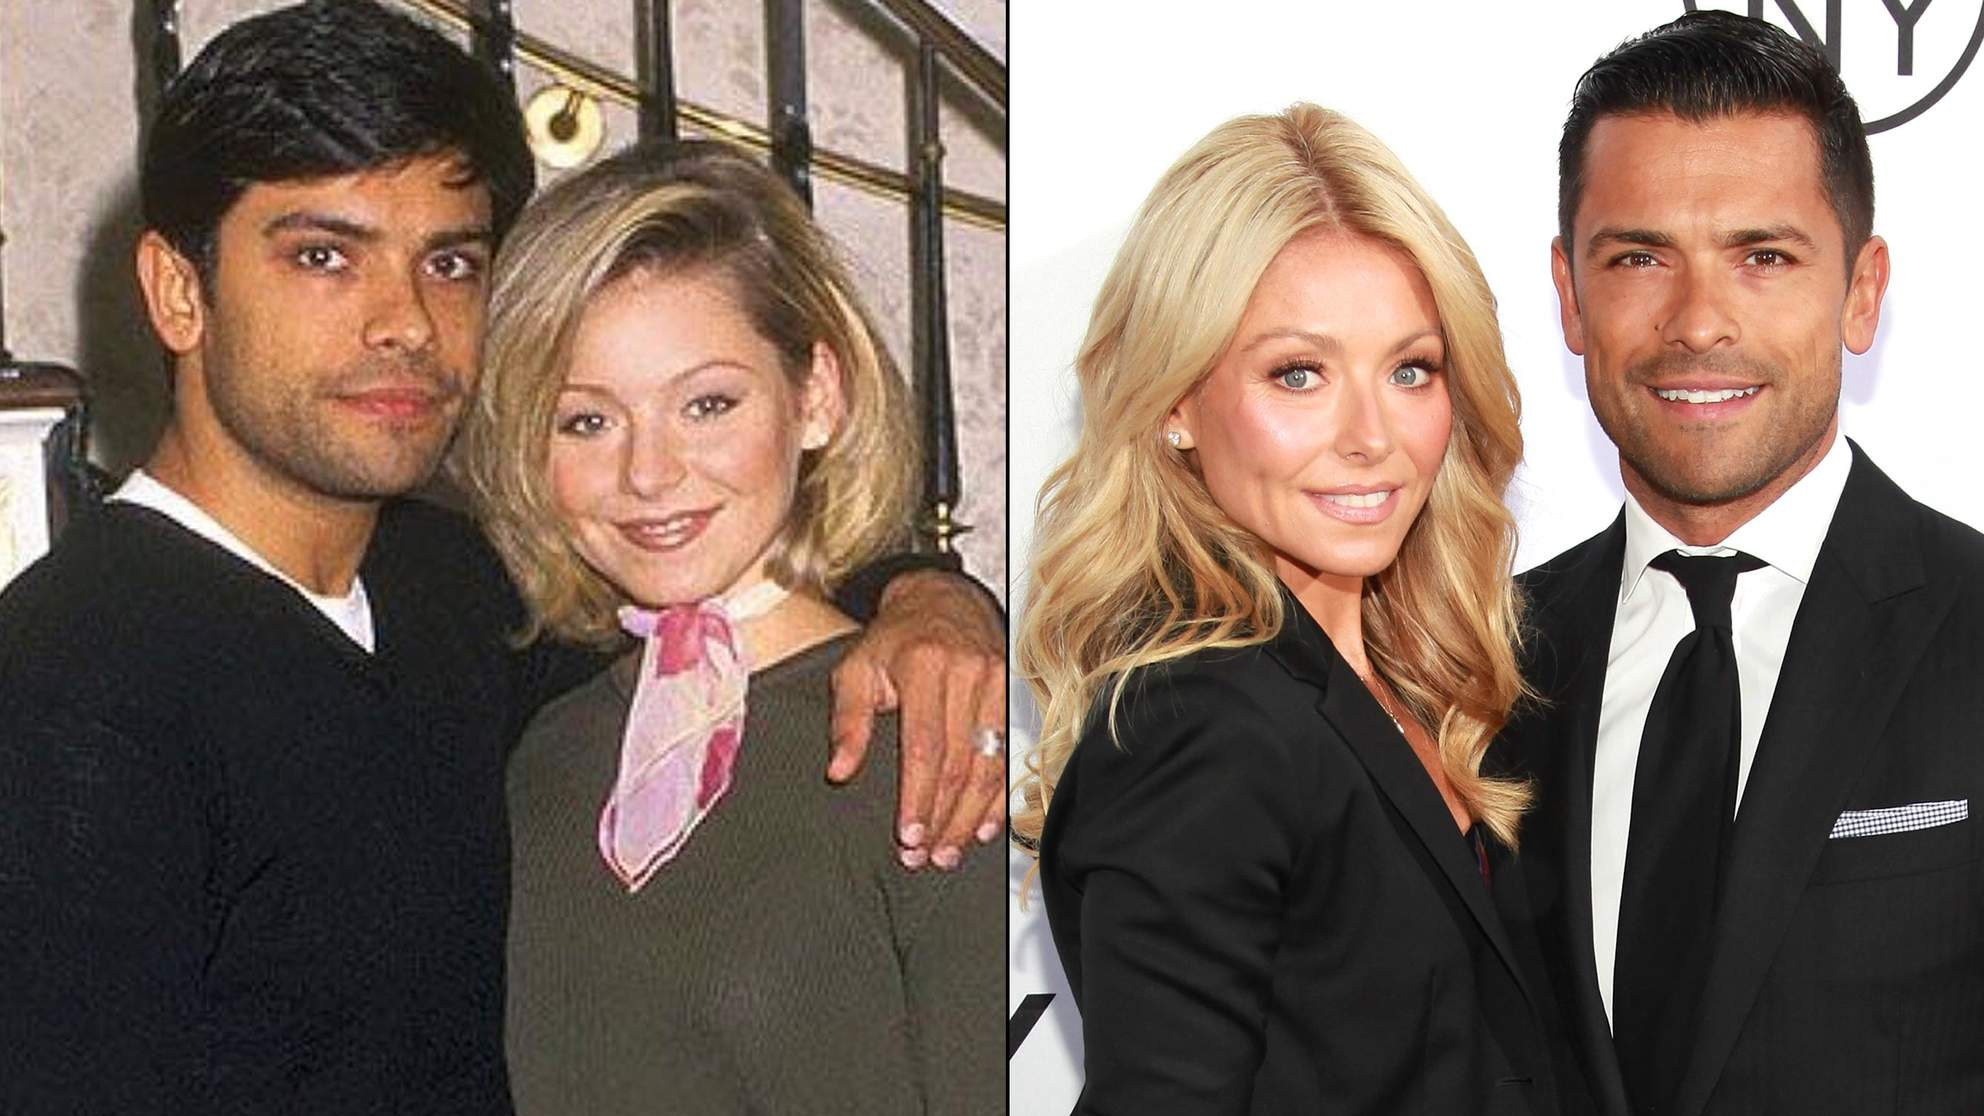 Kelly Ripa Sets Fan Straight for Suggesting She Had a Nose Job and Wears Veneers